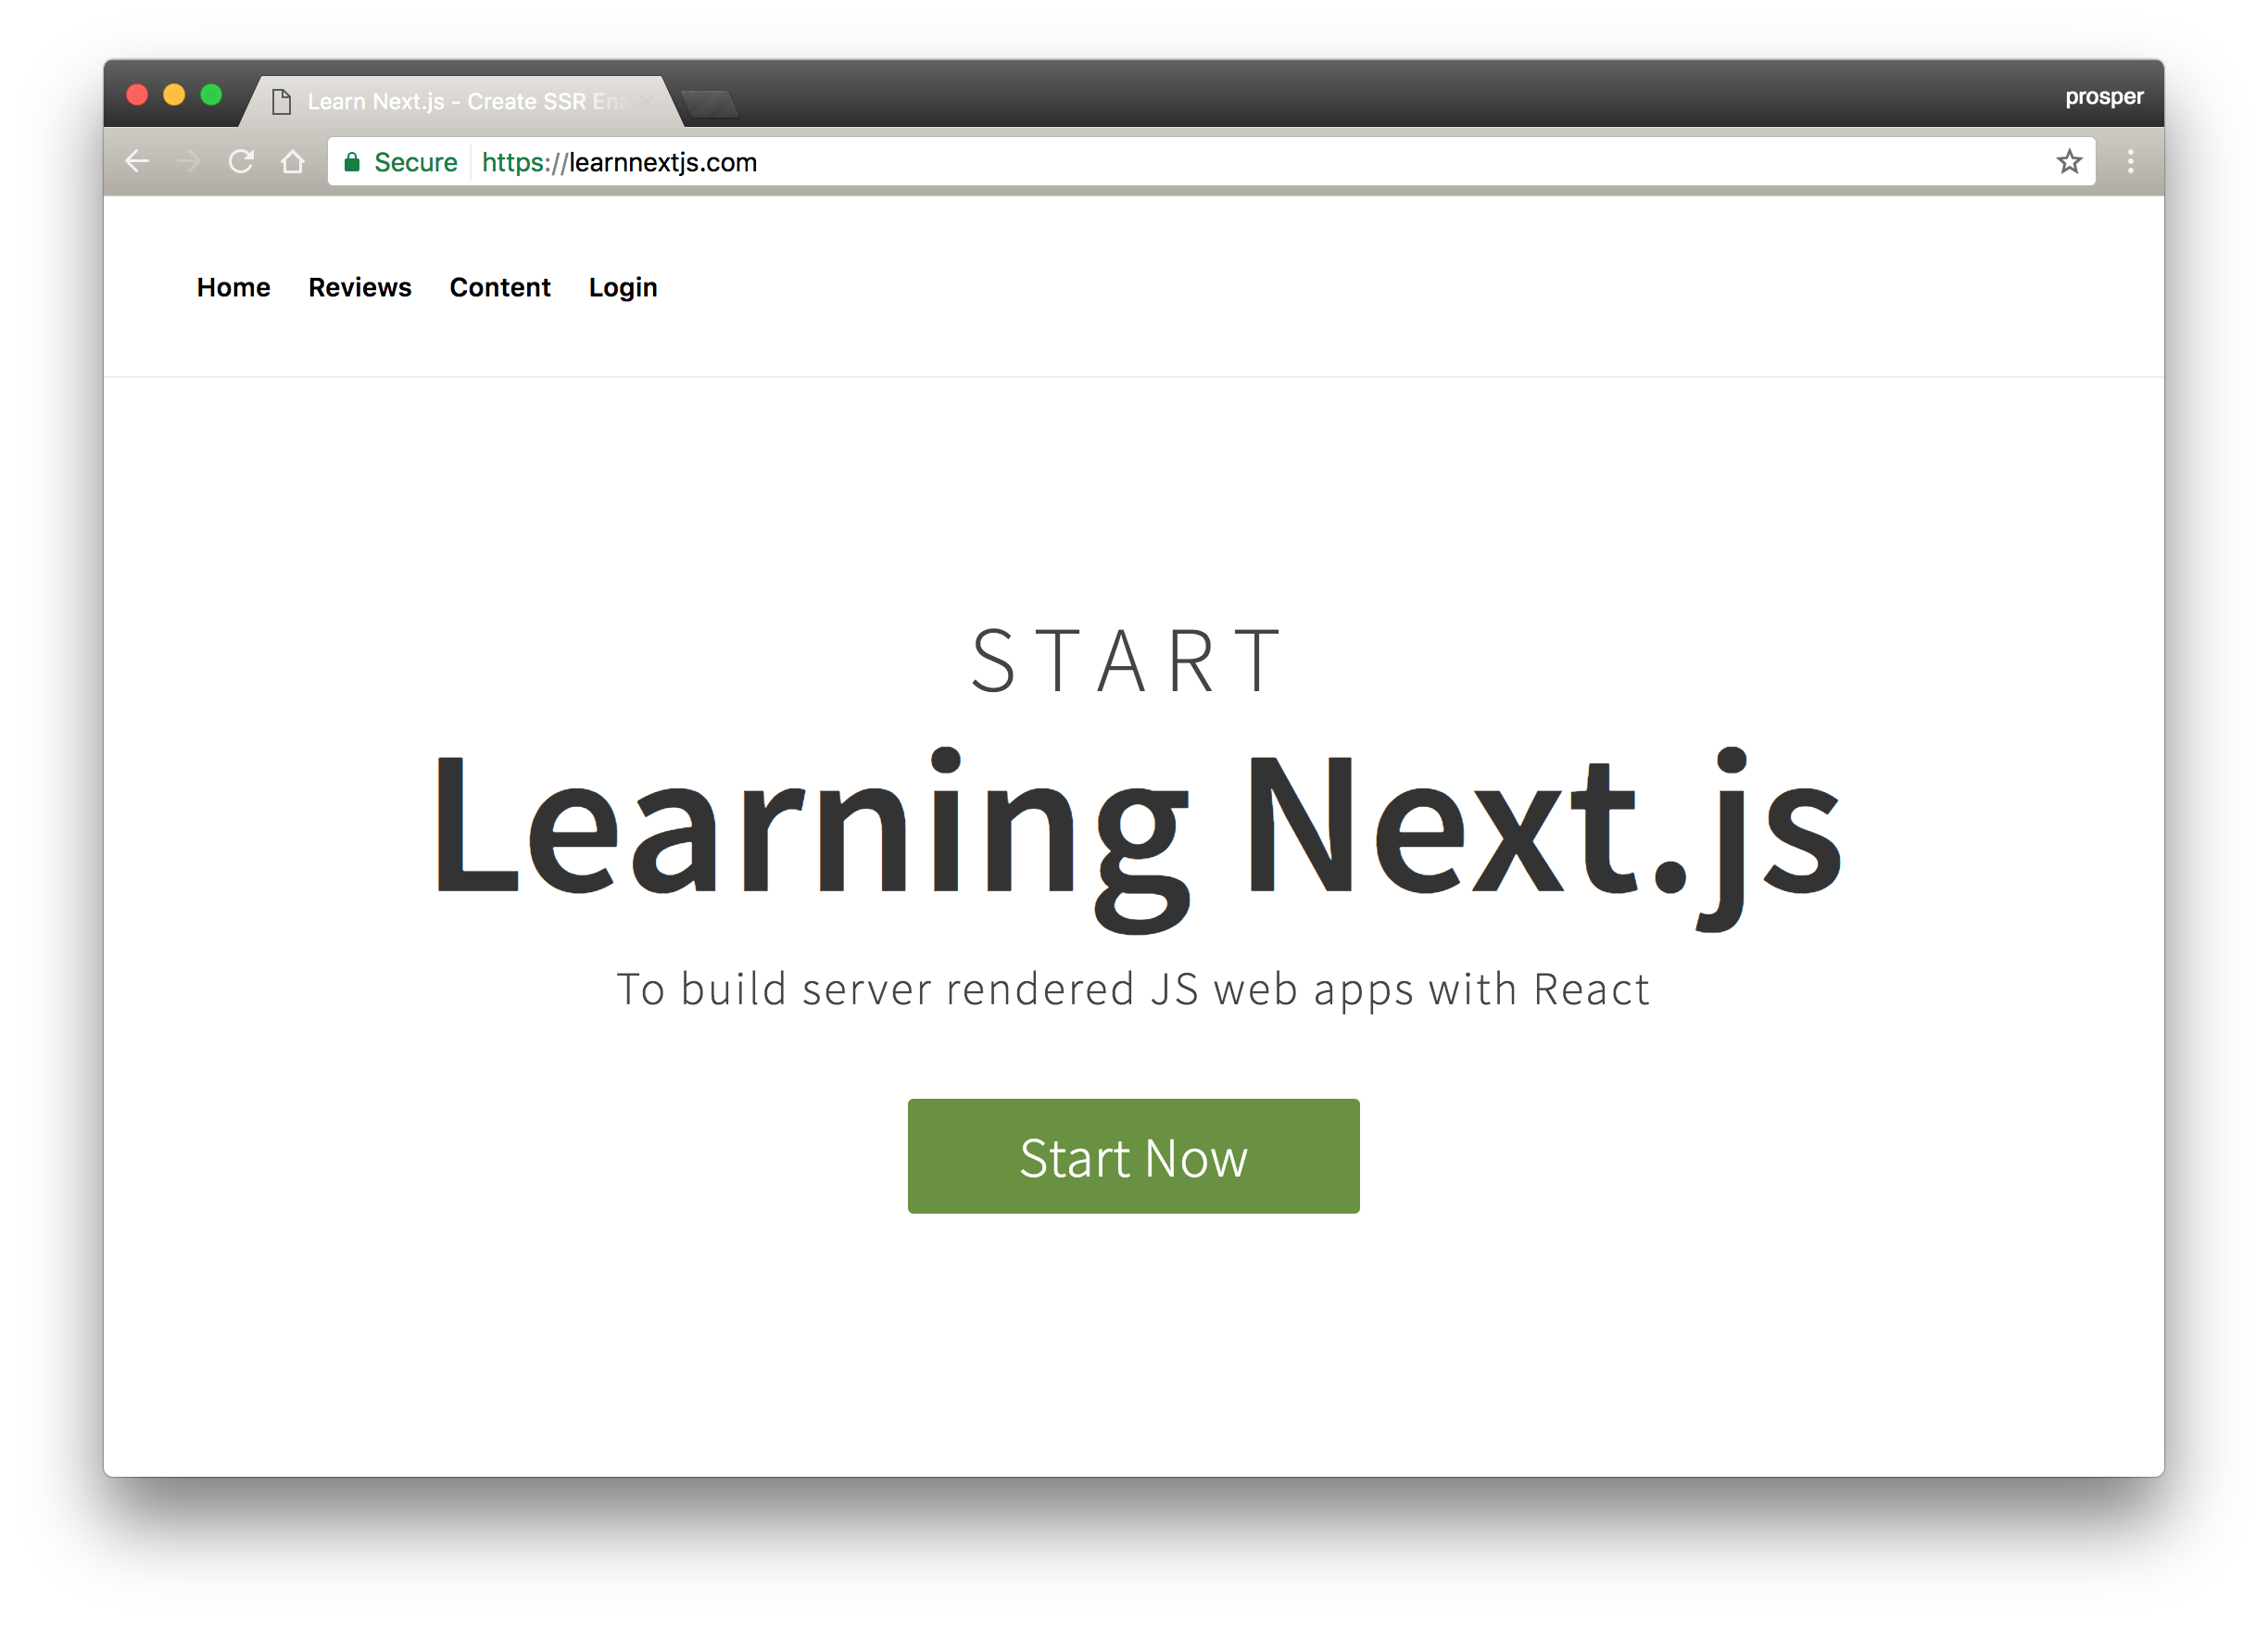 Learn Next.js